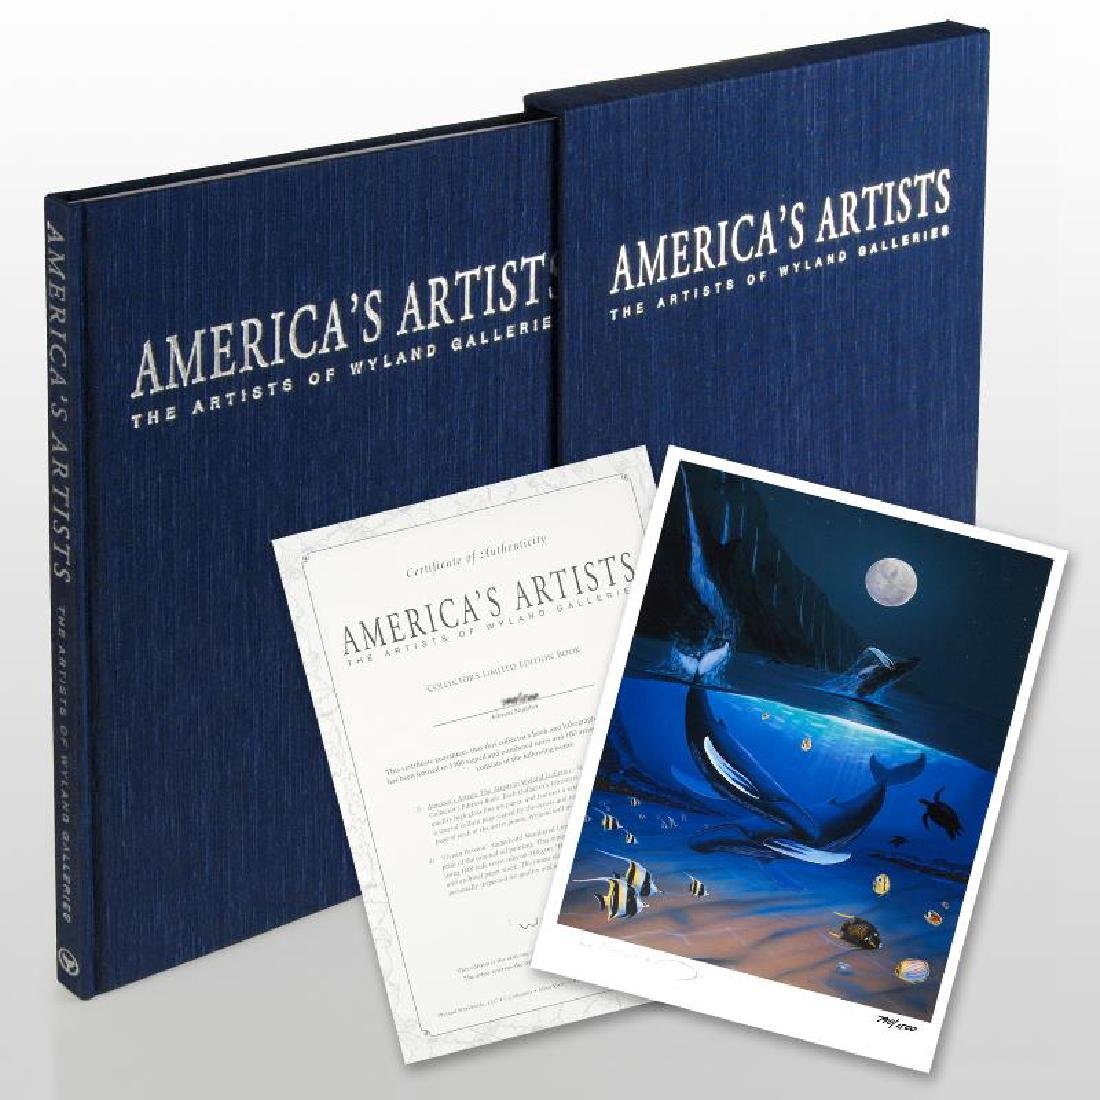 America's Artists: The Artists of Wyland Galleries